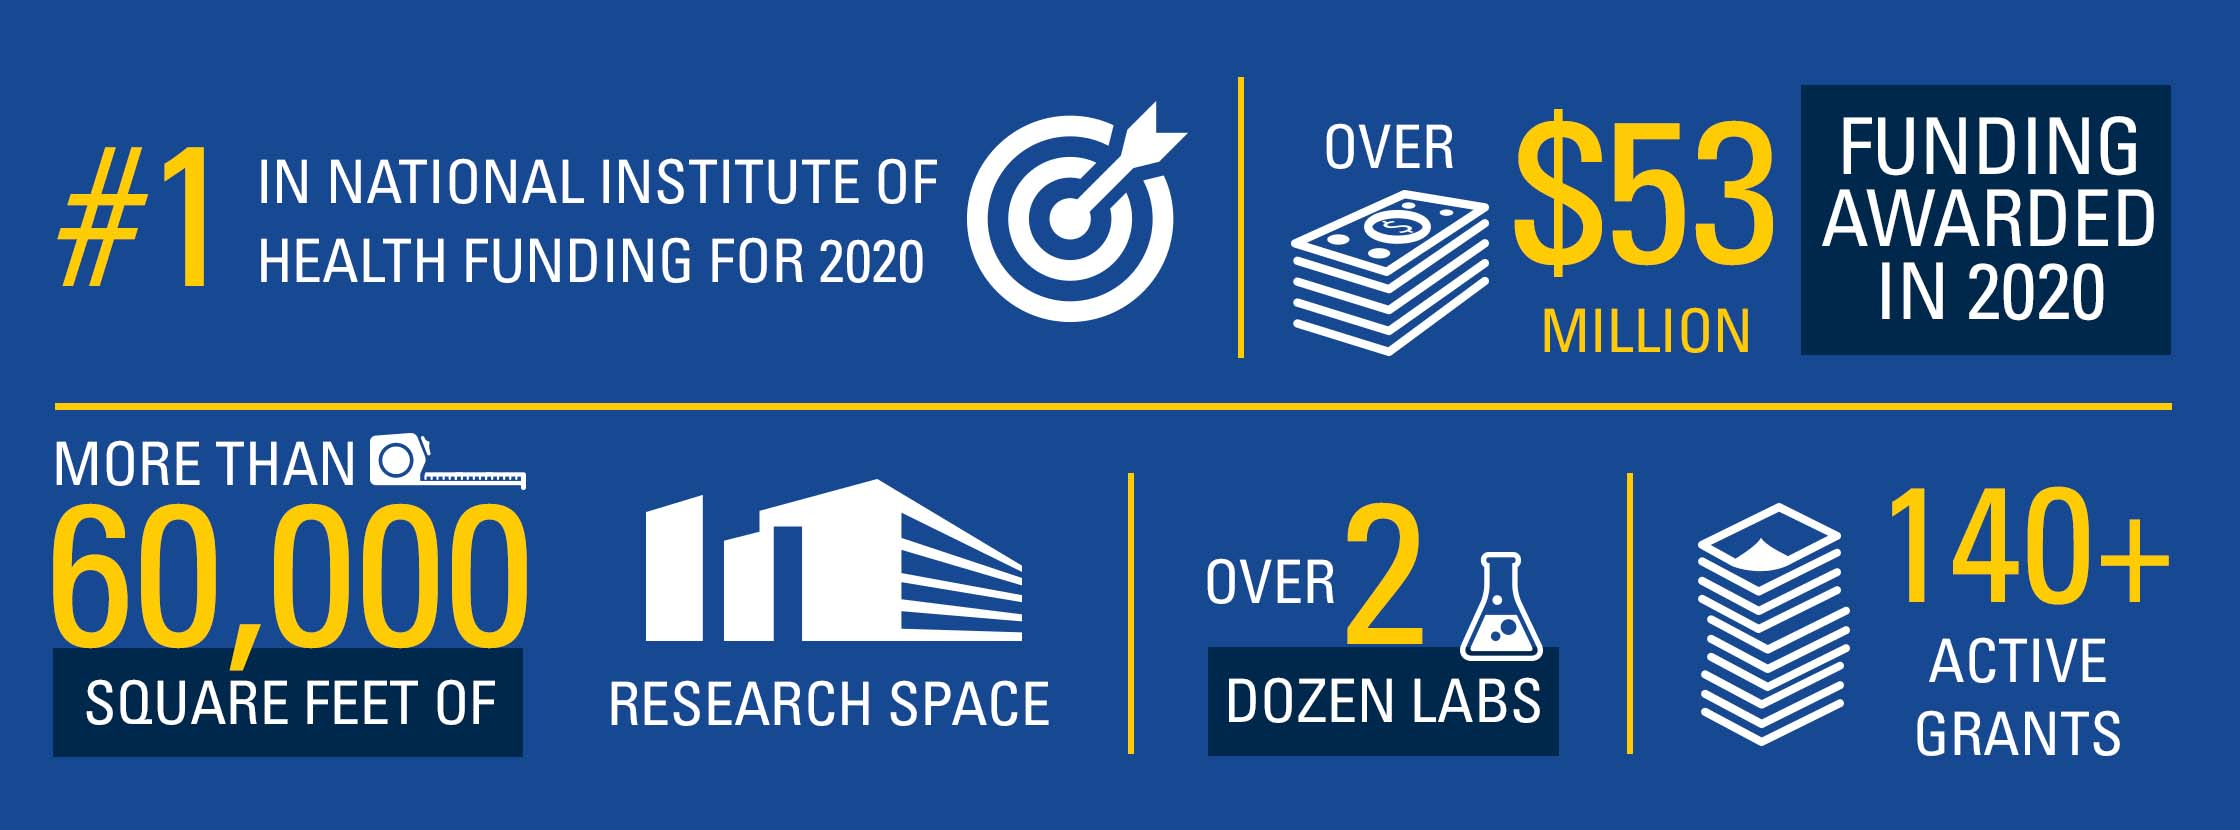 #1 in National Institutes of Health Funding for 2020; Over $53 million funding awarded in 2020; More than 60,000 square feet of research space; Over 2 dozen labs; 145+ active grants